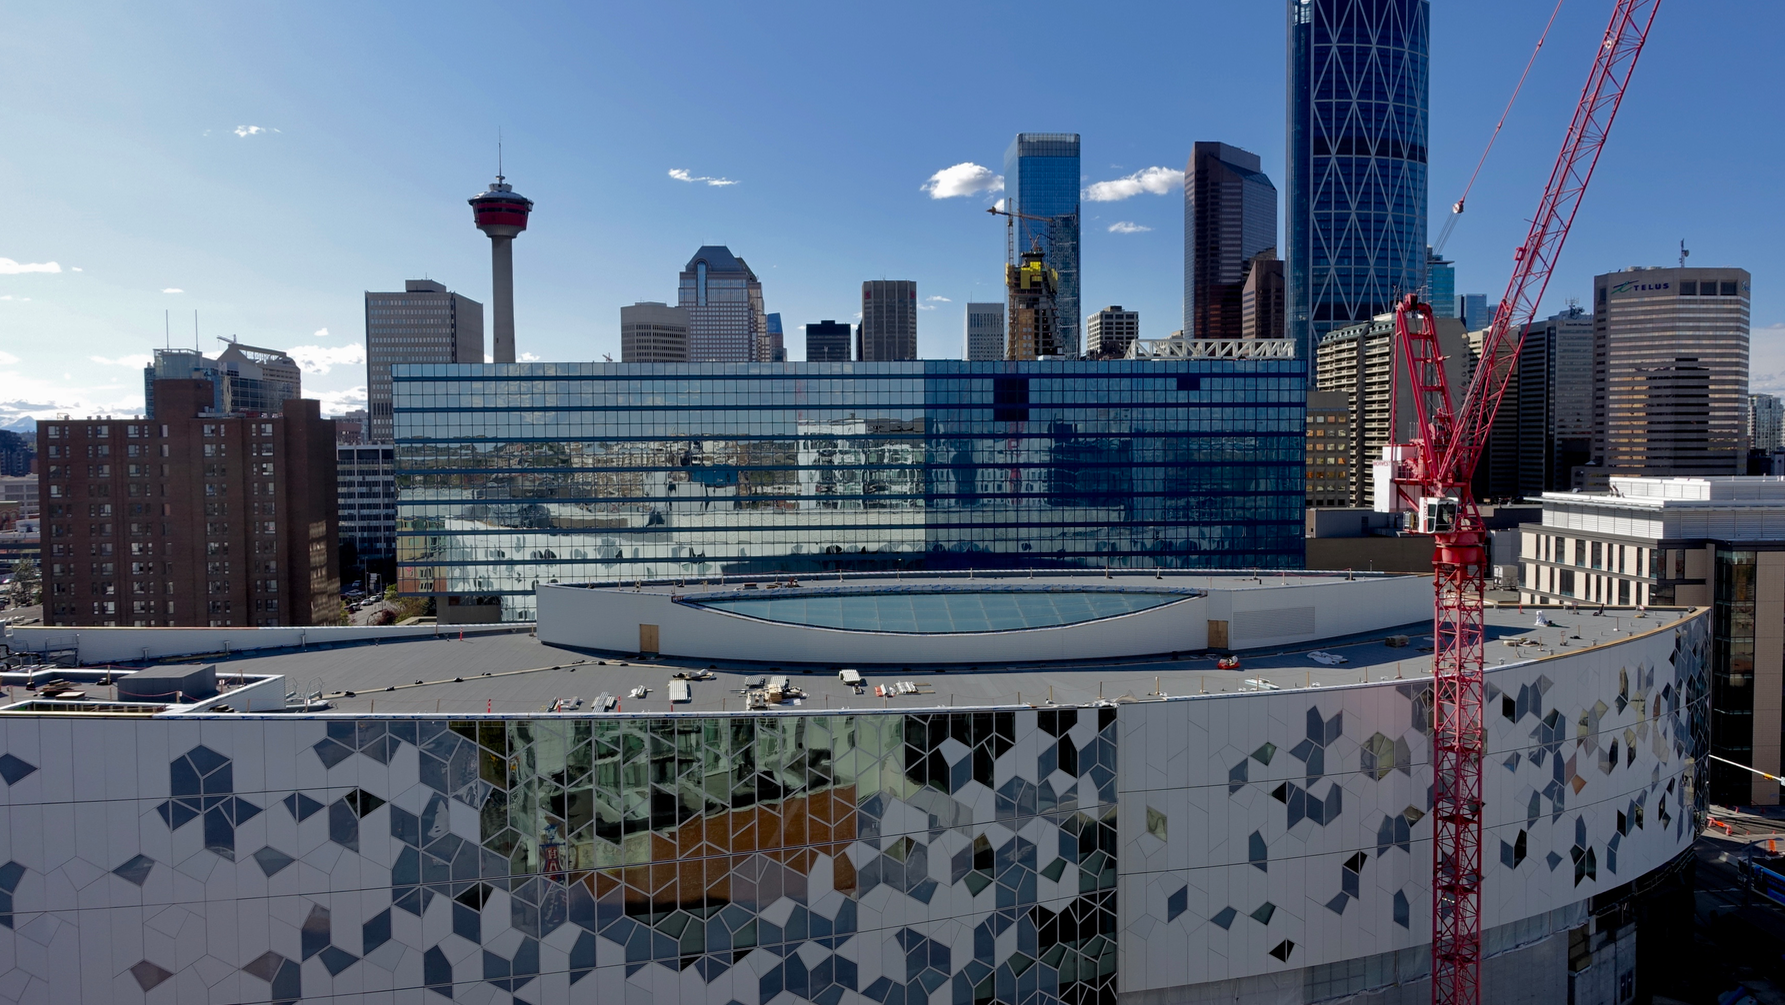 A view of Calgary skyline from the N3 condo rooftop patio with the new Central Library in the foreground.